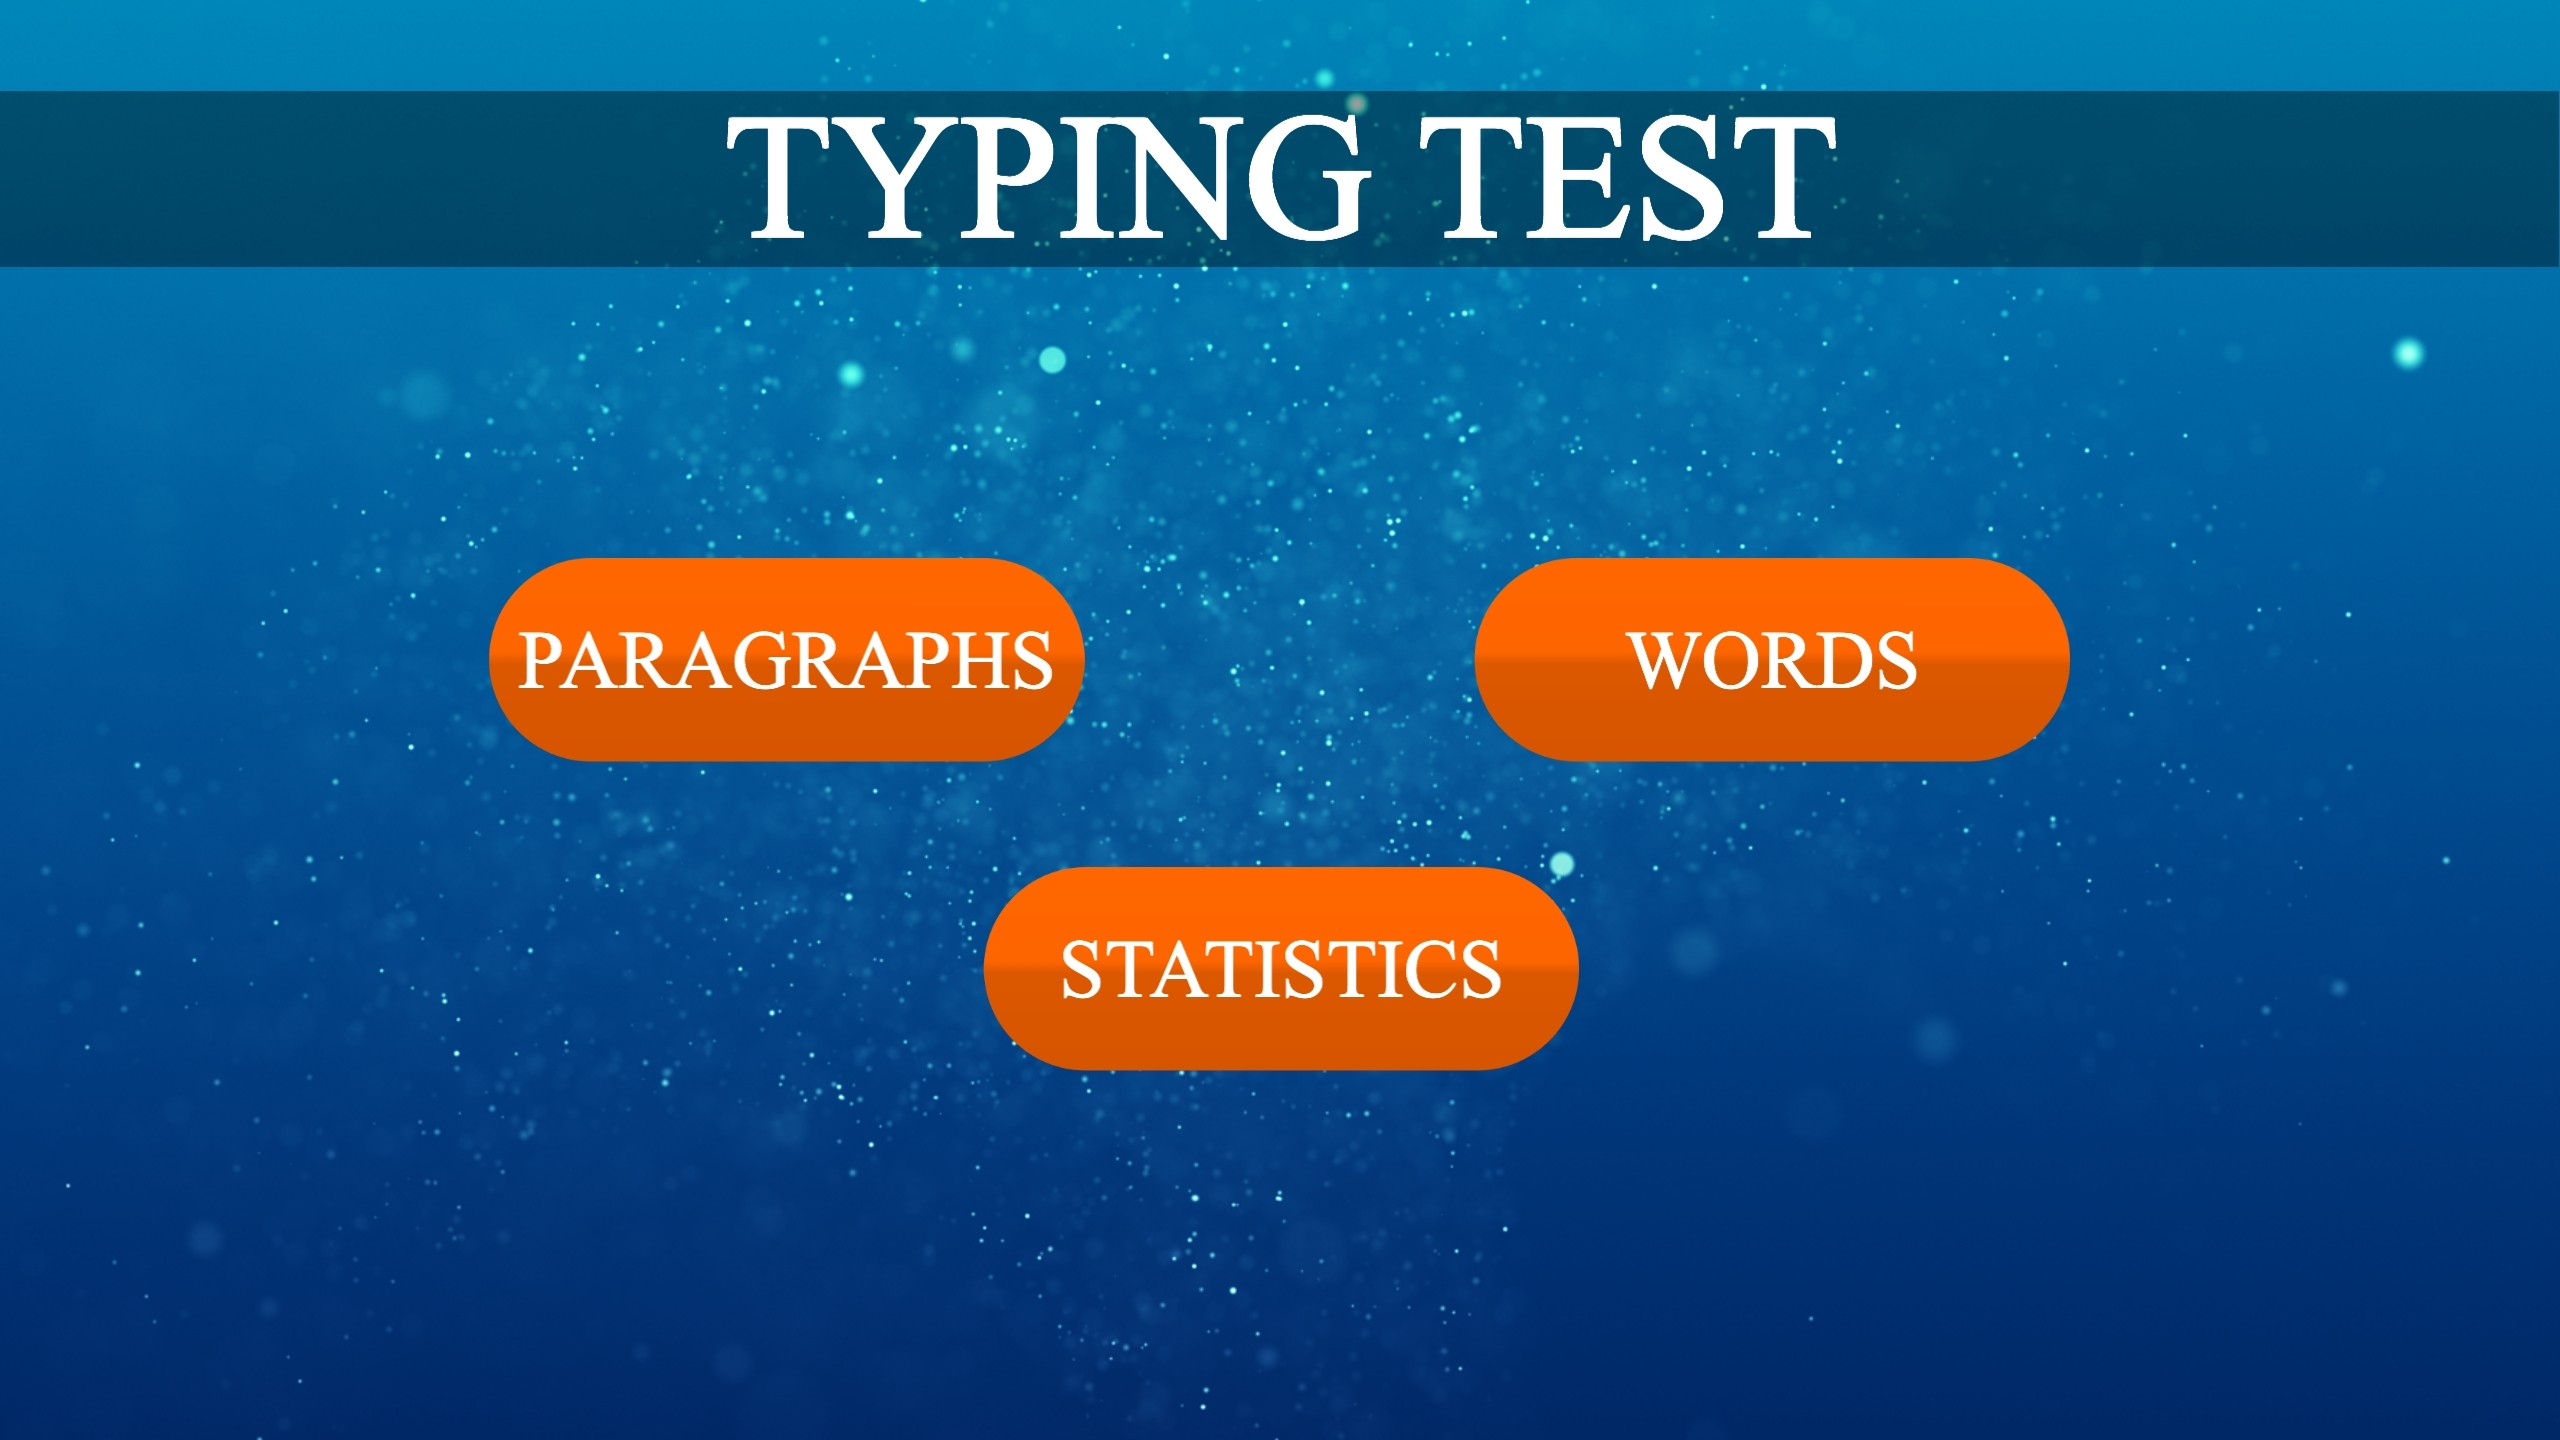 Typing test paragraph, Online typing master, Typing test 5 minutes, Typing test download, Typing test games, Typing test 1 minute,